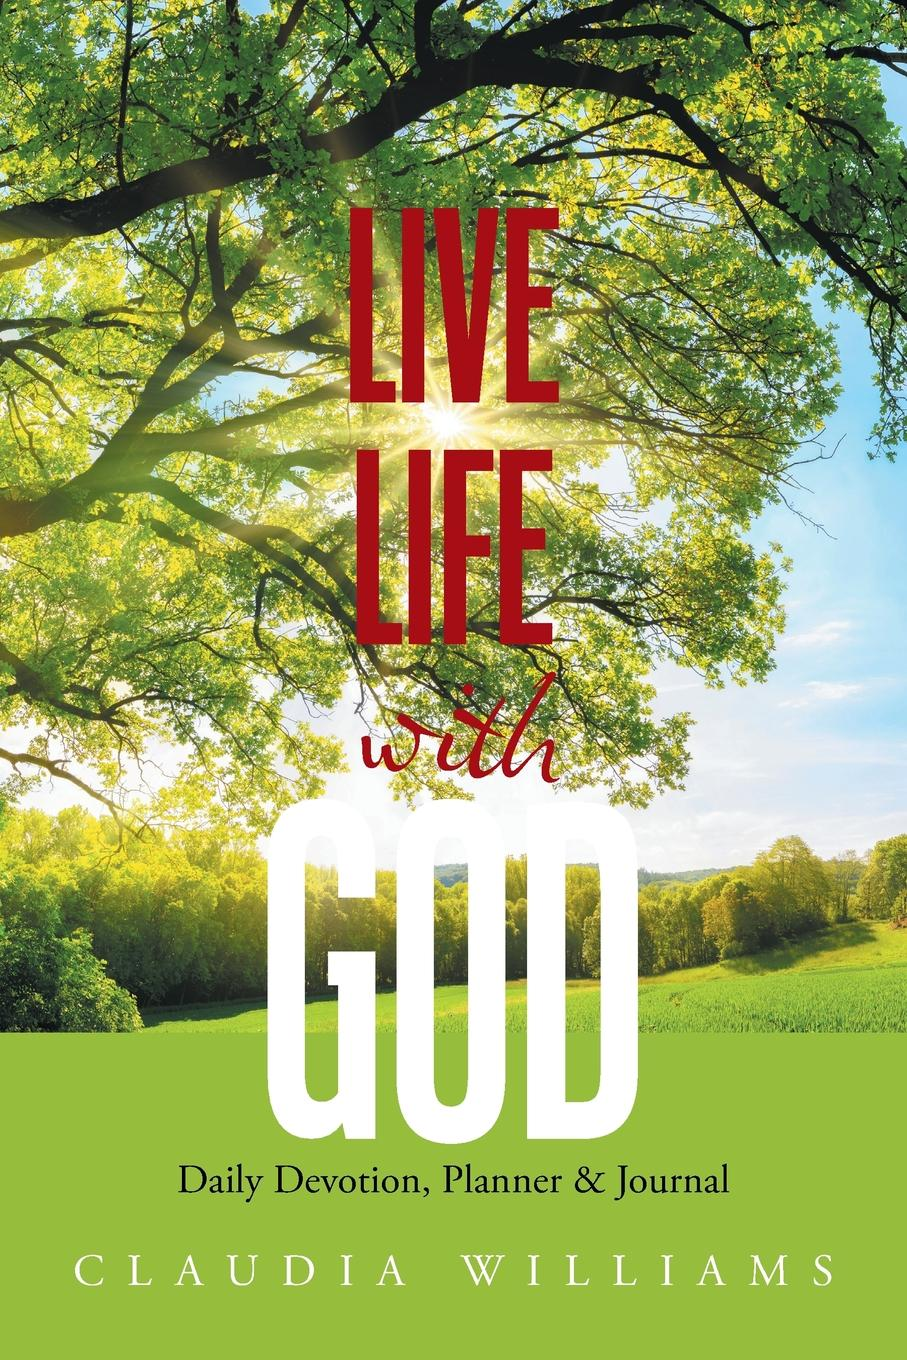 Claudia Williams Live Life with God. Daily Devotion, Planner . Journal kaylee berry lifestyle blog planner journal lifestyle blogging content planner never run out of things to blog about again